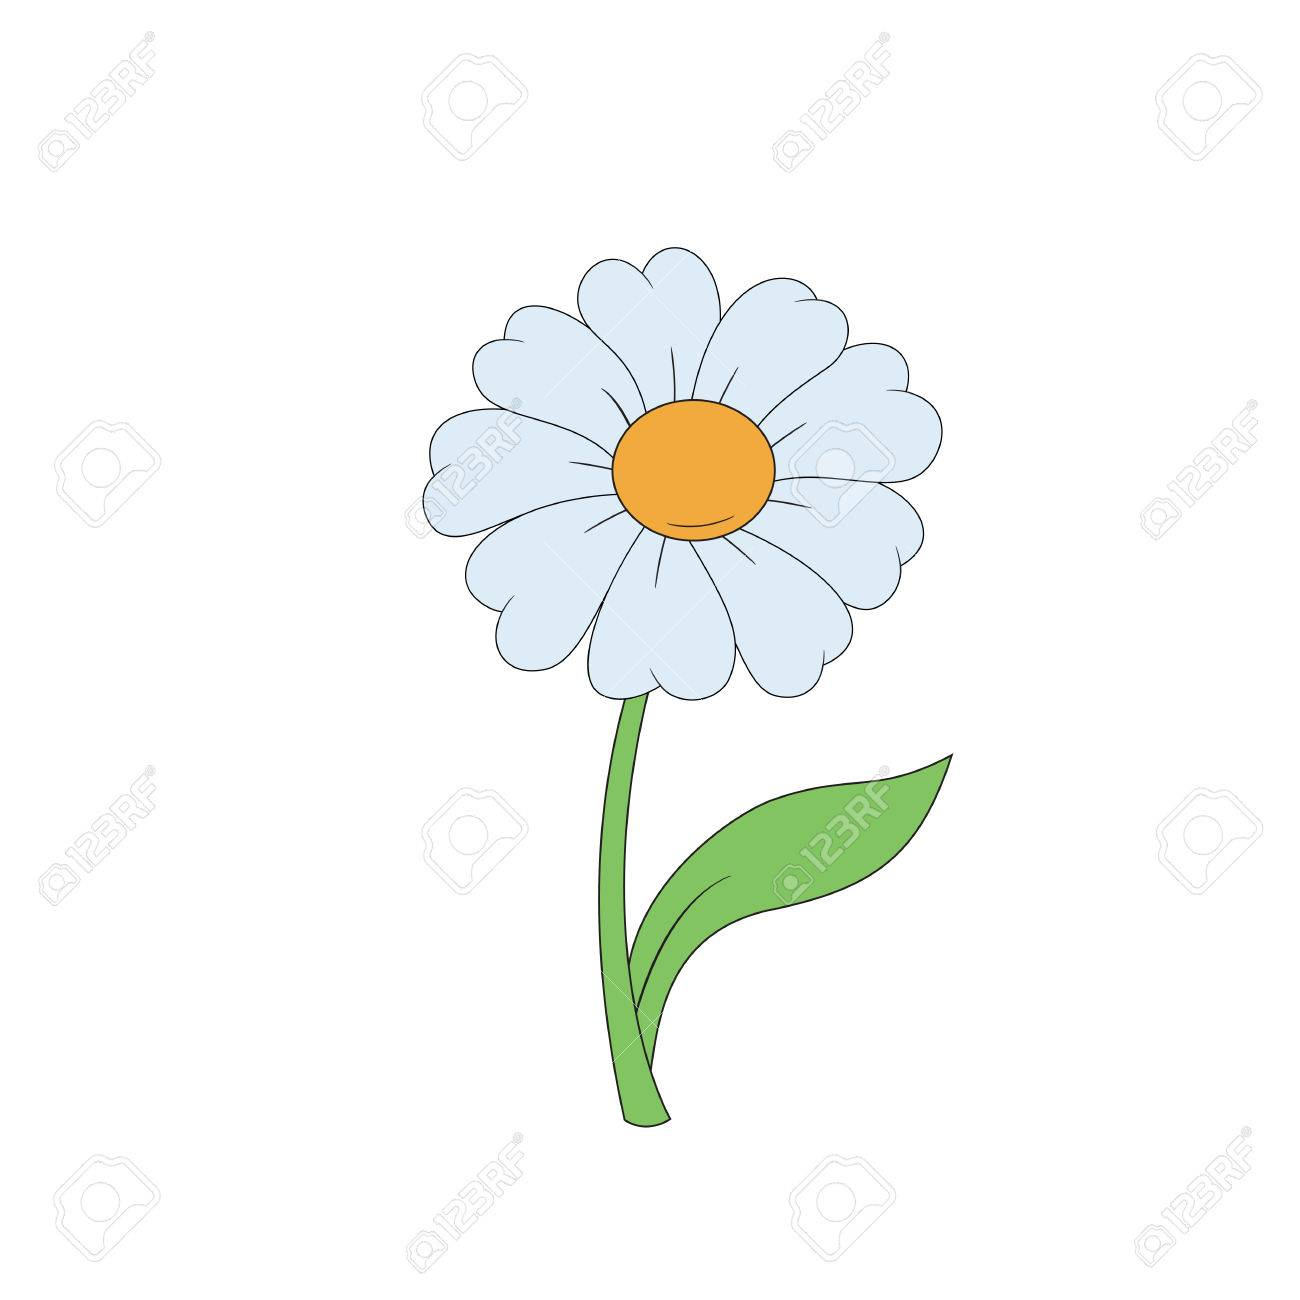 Cartoon Daisy Simple Flower On White Background Vector